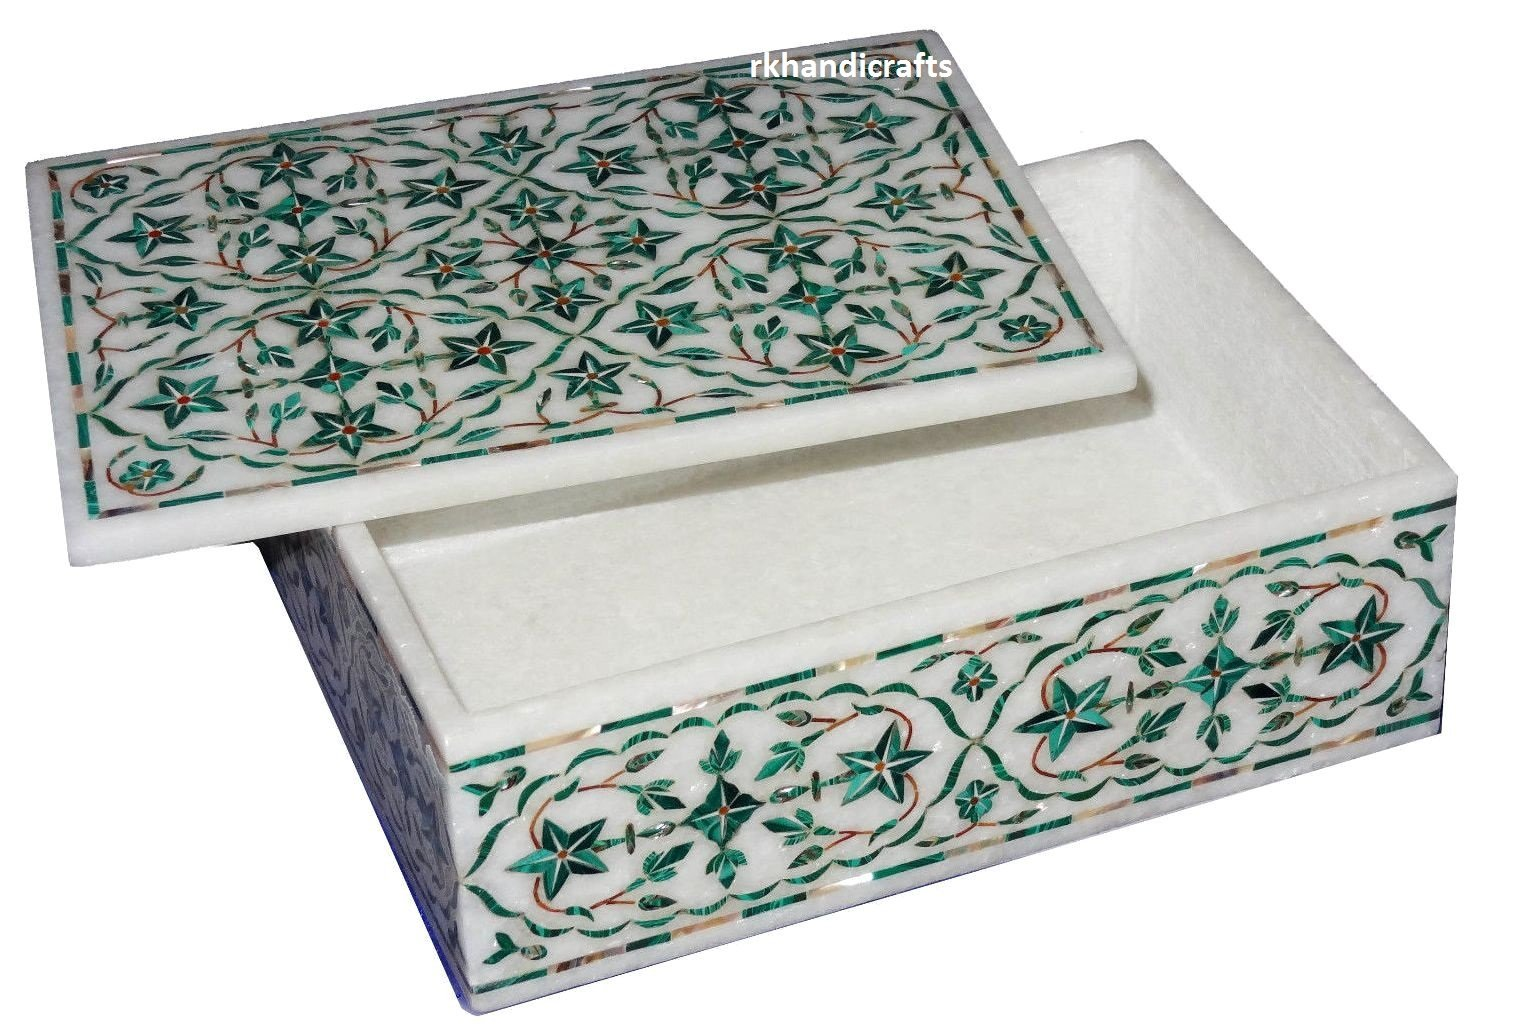 Very Fine Art 8'' x 6'' x 2'' White Marble Trinket Box Fully Malachite Stones Inlay Floral Work